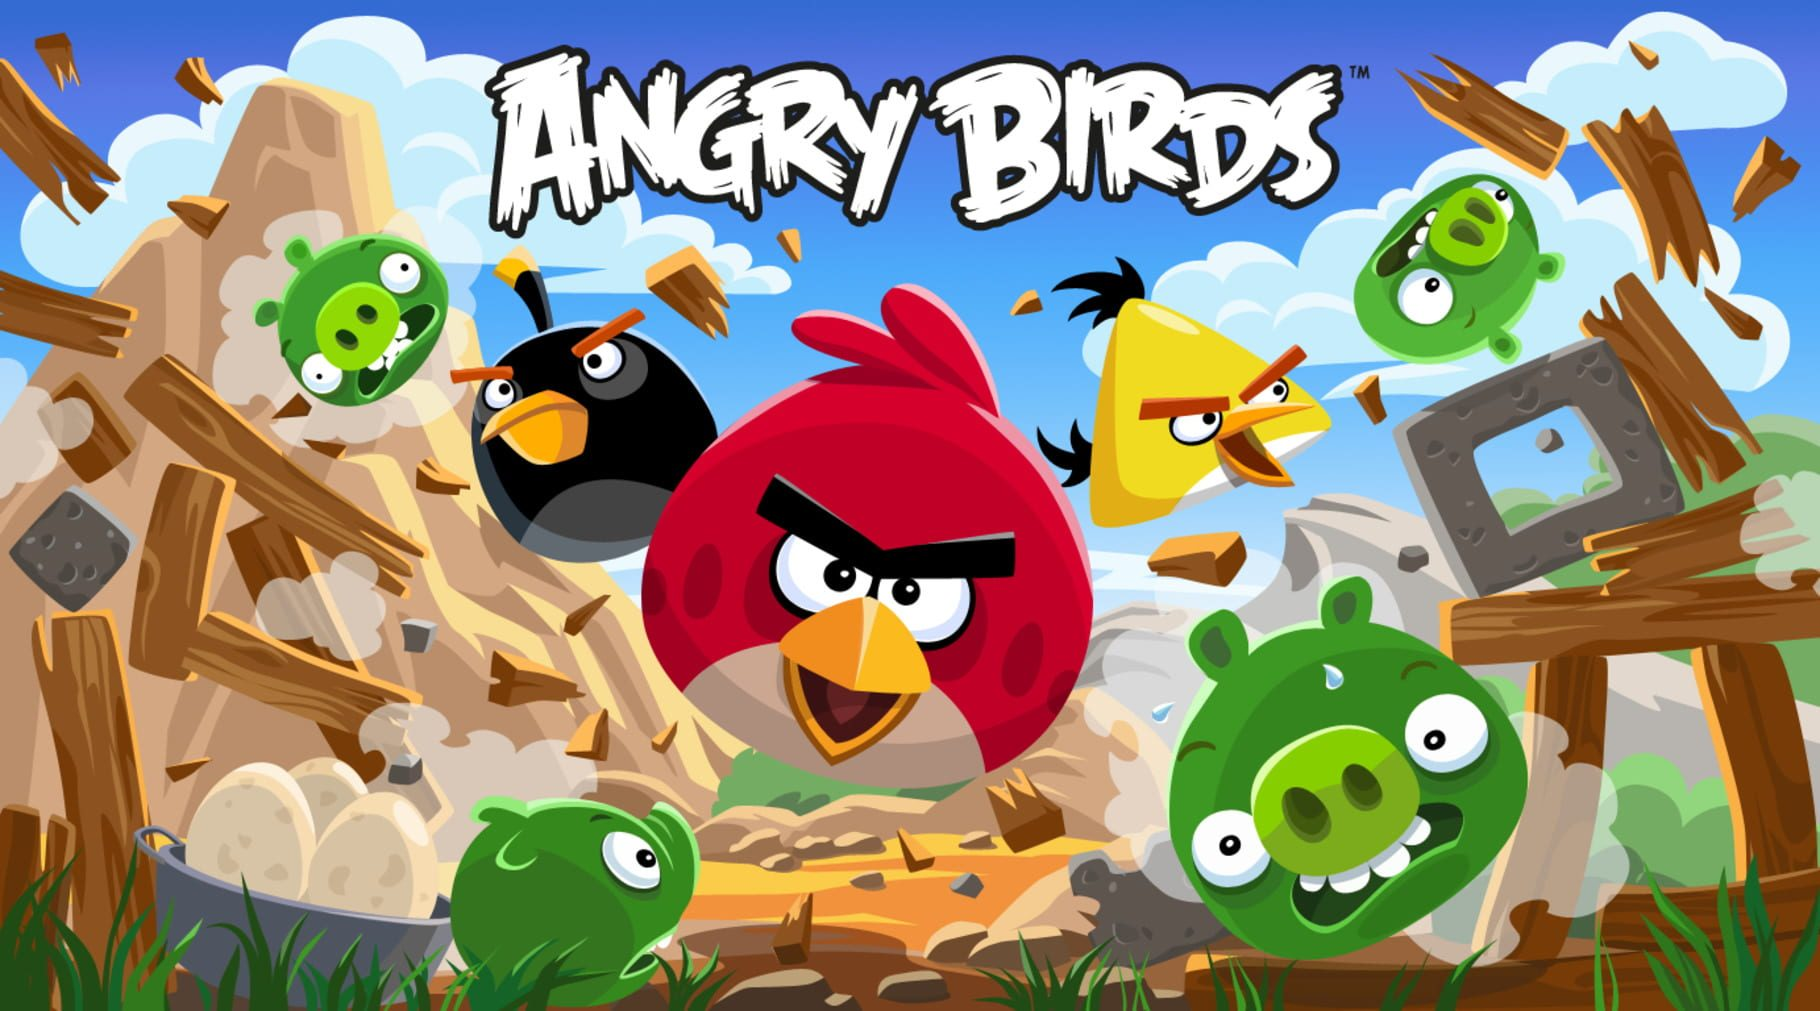 buy Angry Birds cd key for all platform